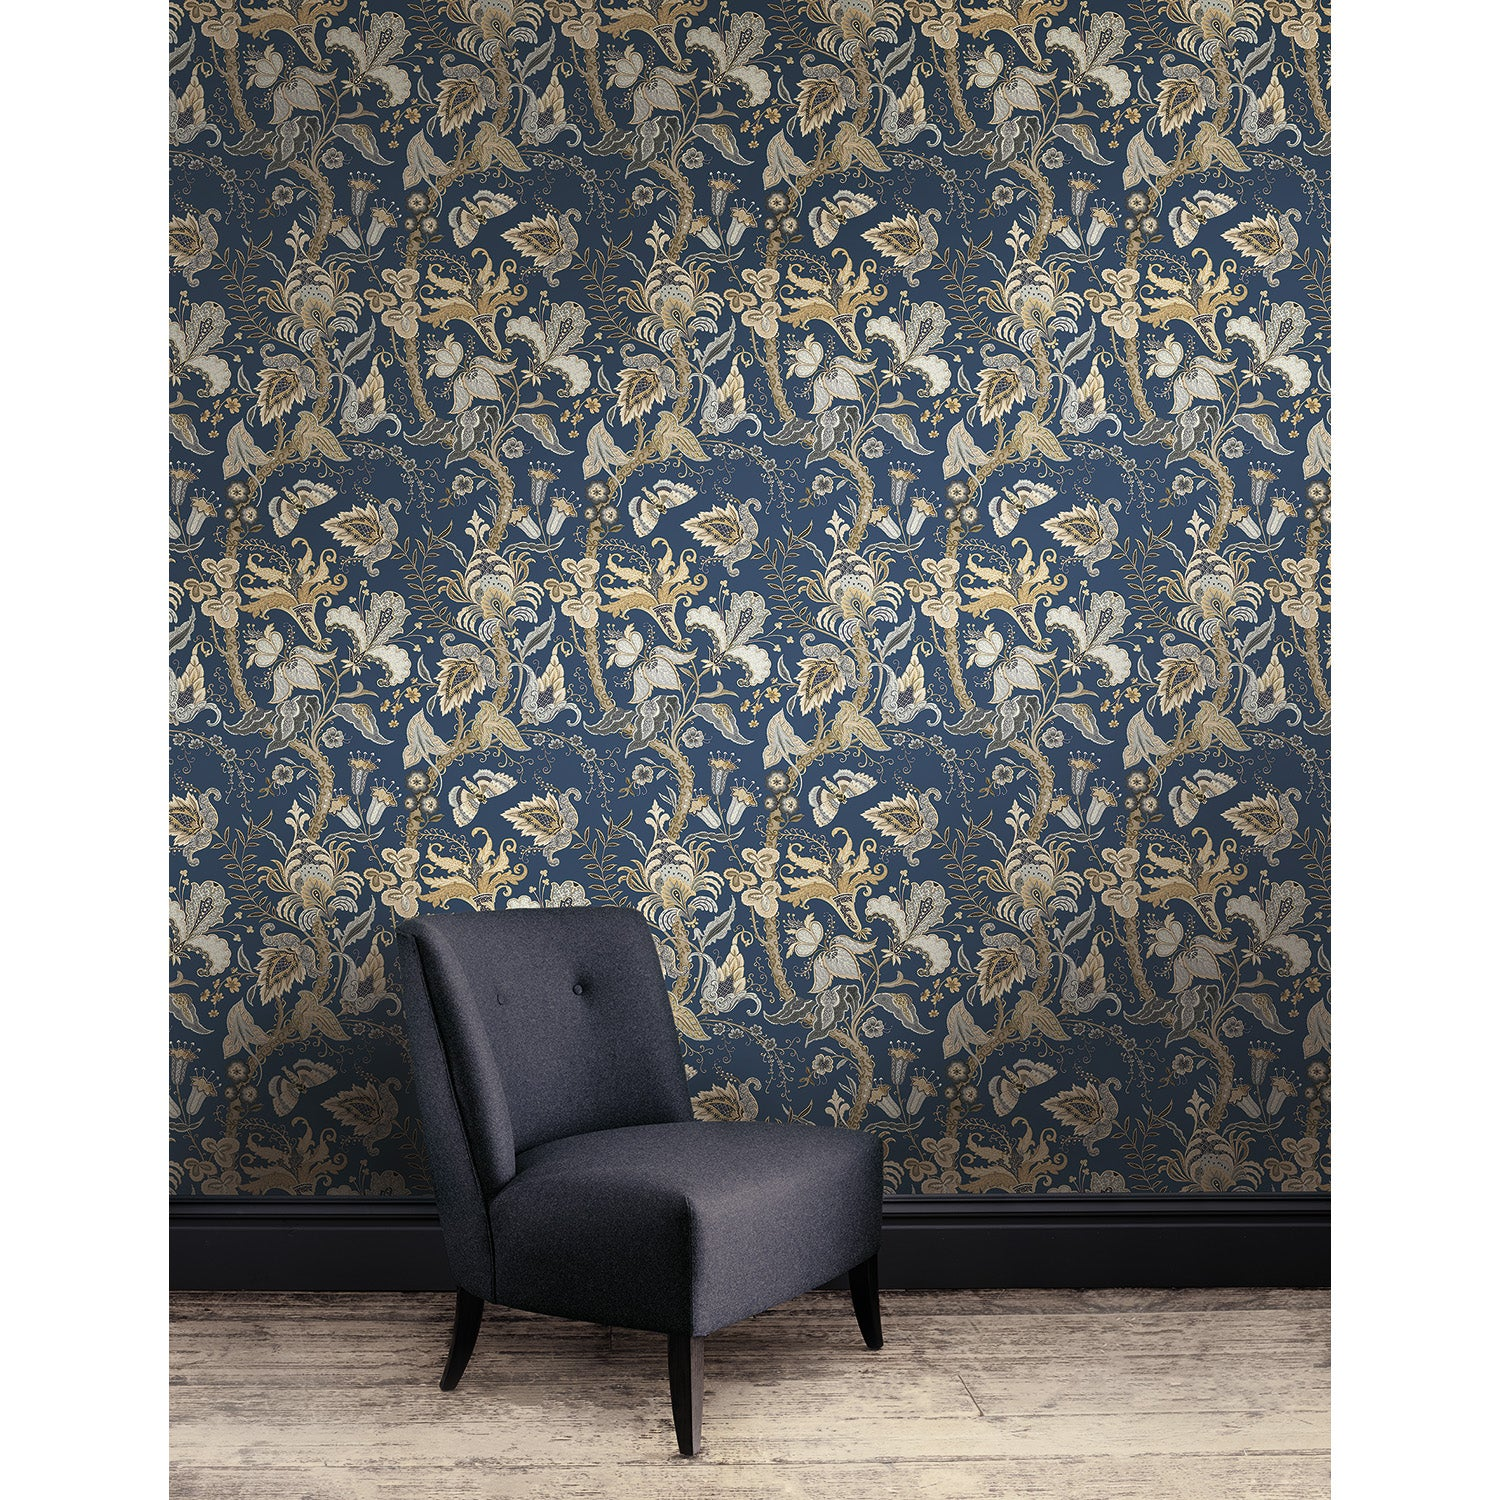 Blue chair with a dark feature wallcovering featuring a stylised floral design